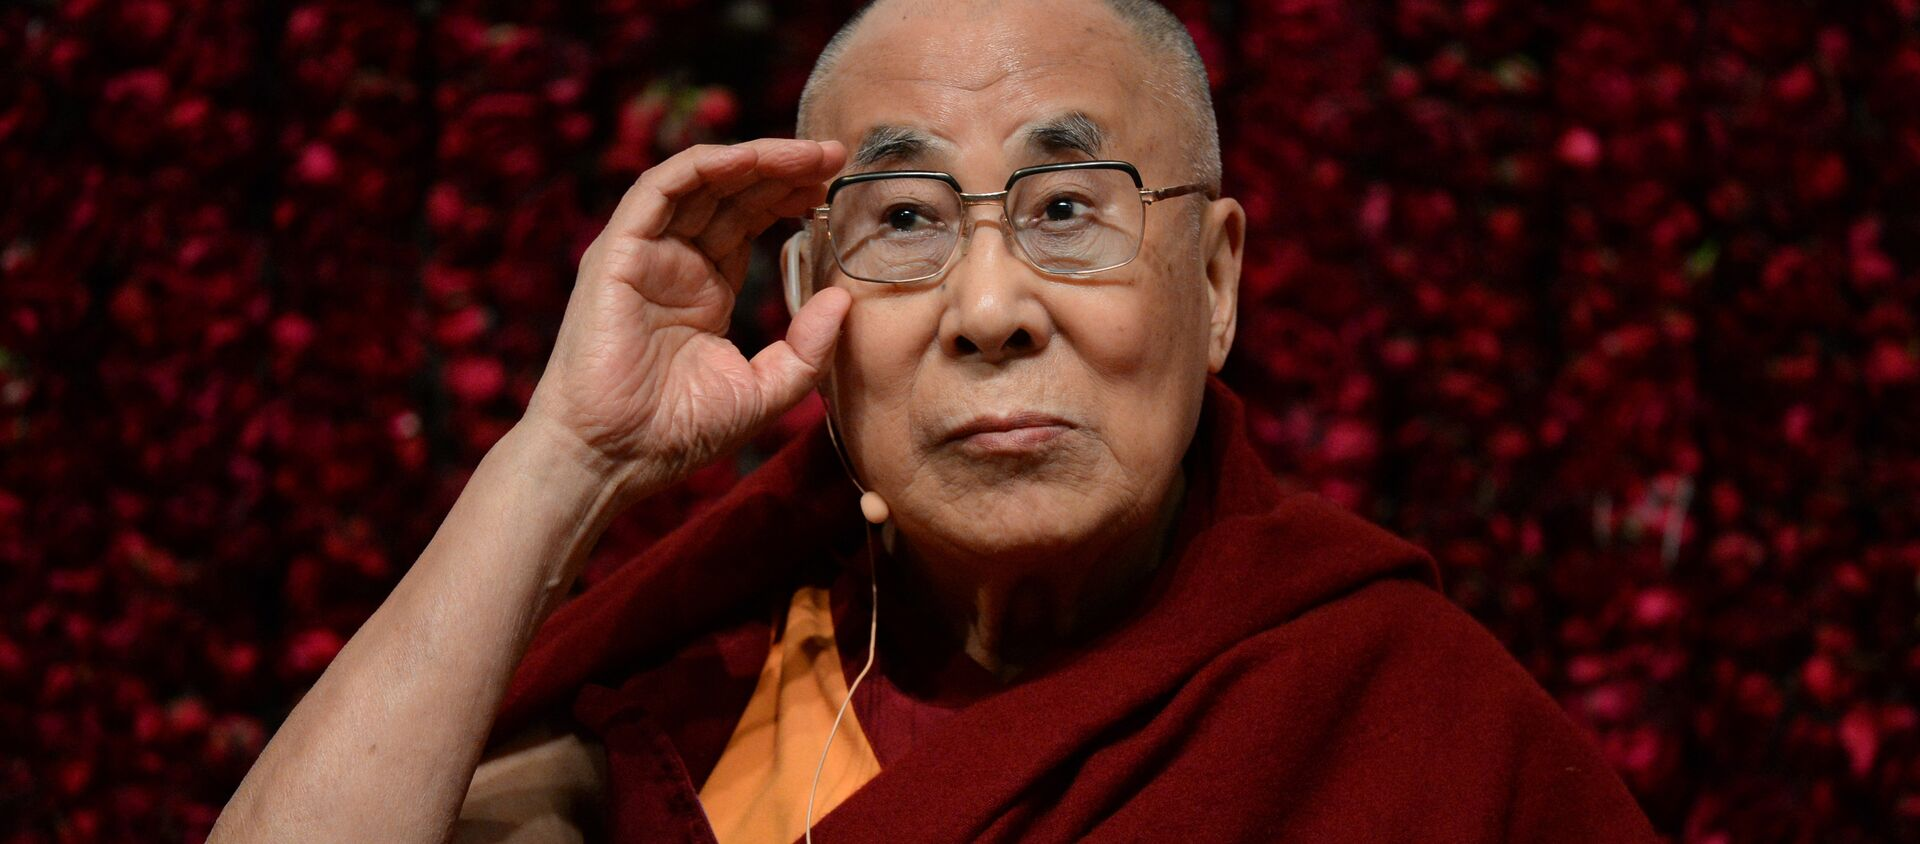 """Tibetan spiritual leader, the Dalai Lama, gestures before delivering a public lecture on """"Reviving Indian Wisdom in Contemporary India"""" at a function in New Delhi on February 5, 2017 - Sputnik Việt Nam, 1920, 06.07.2021"""